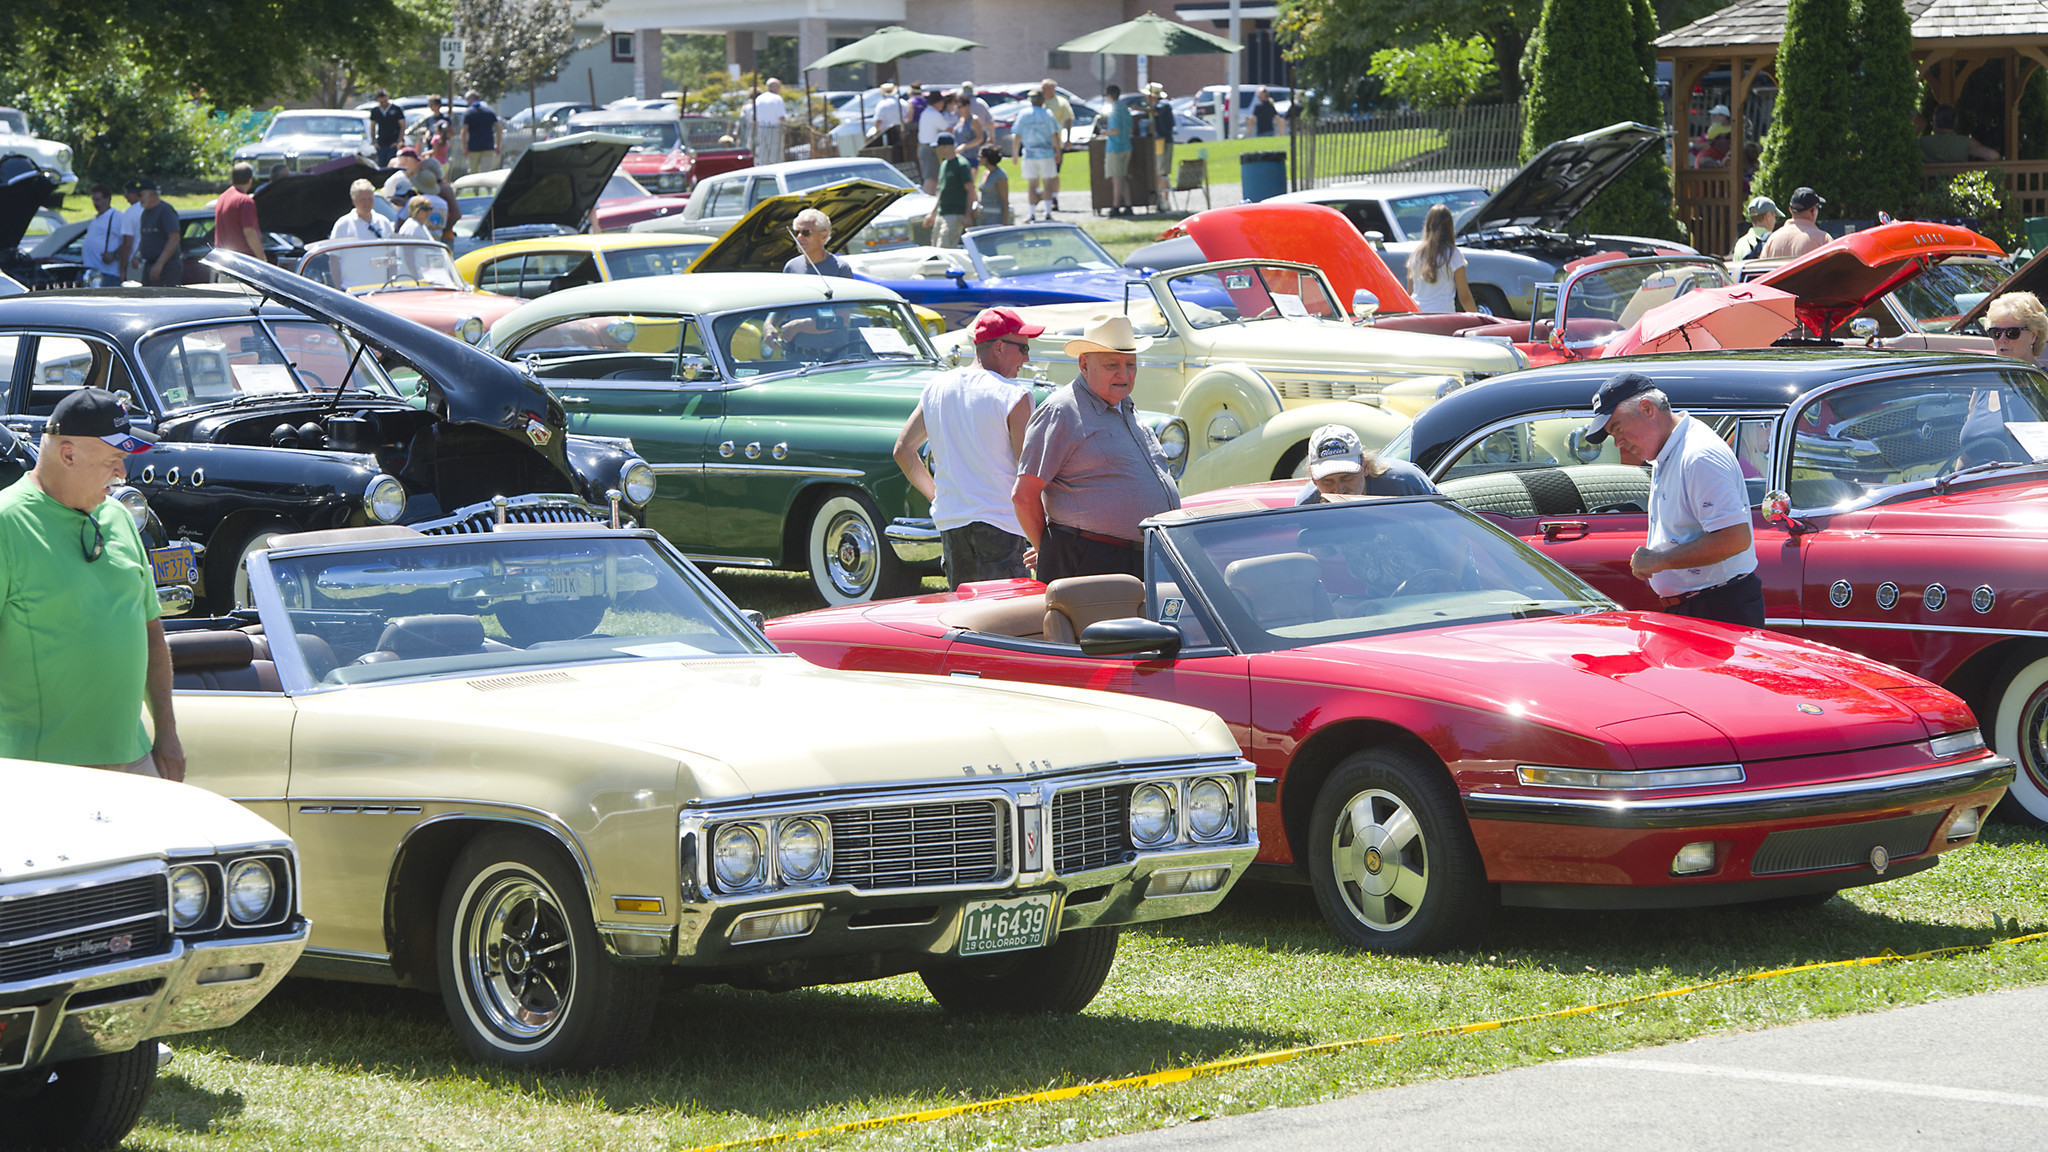 Highlights Of Macungie Car Show Das Awkscht Fescht The Morning Call - Car show allentown pa